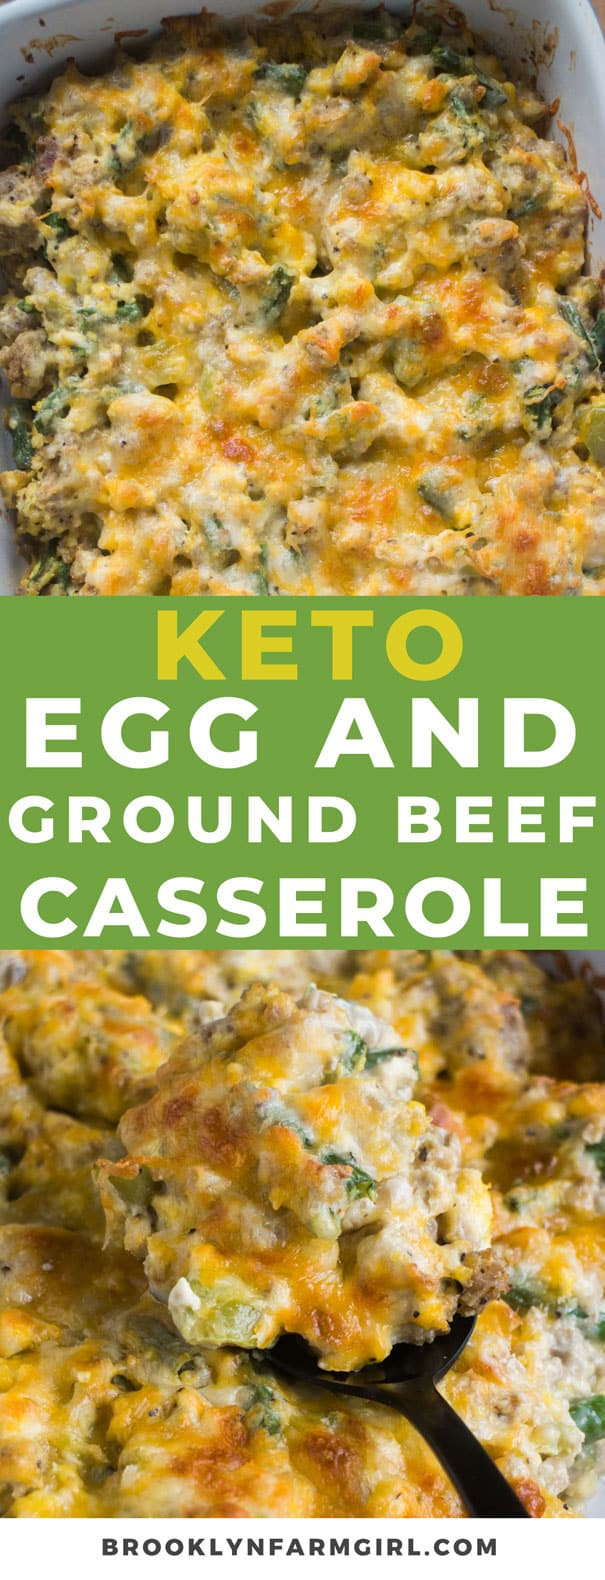 KETO Scrambled Egg Ground Beef Casserole recipe that's easy to make! This baked ground beef casserole is low carb and you can make ahead overnight if you'd like! It's packed with vegetables and sprinkled with cheddar cheese!